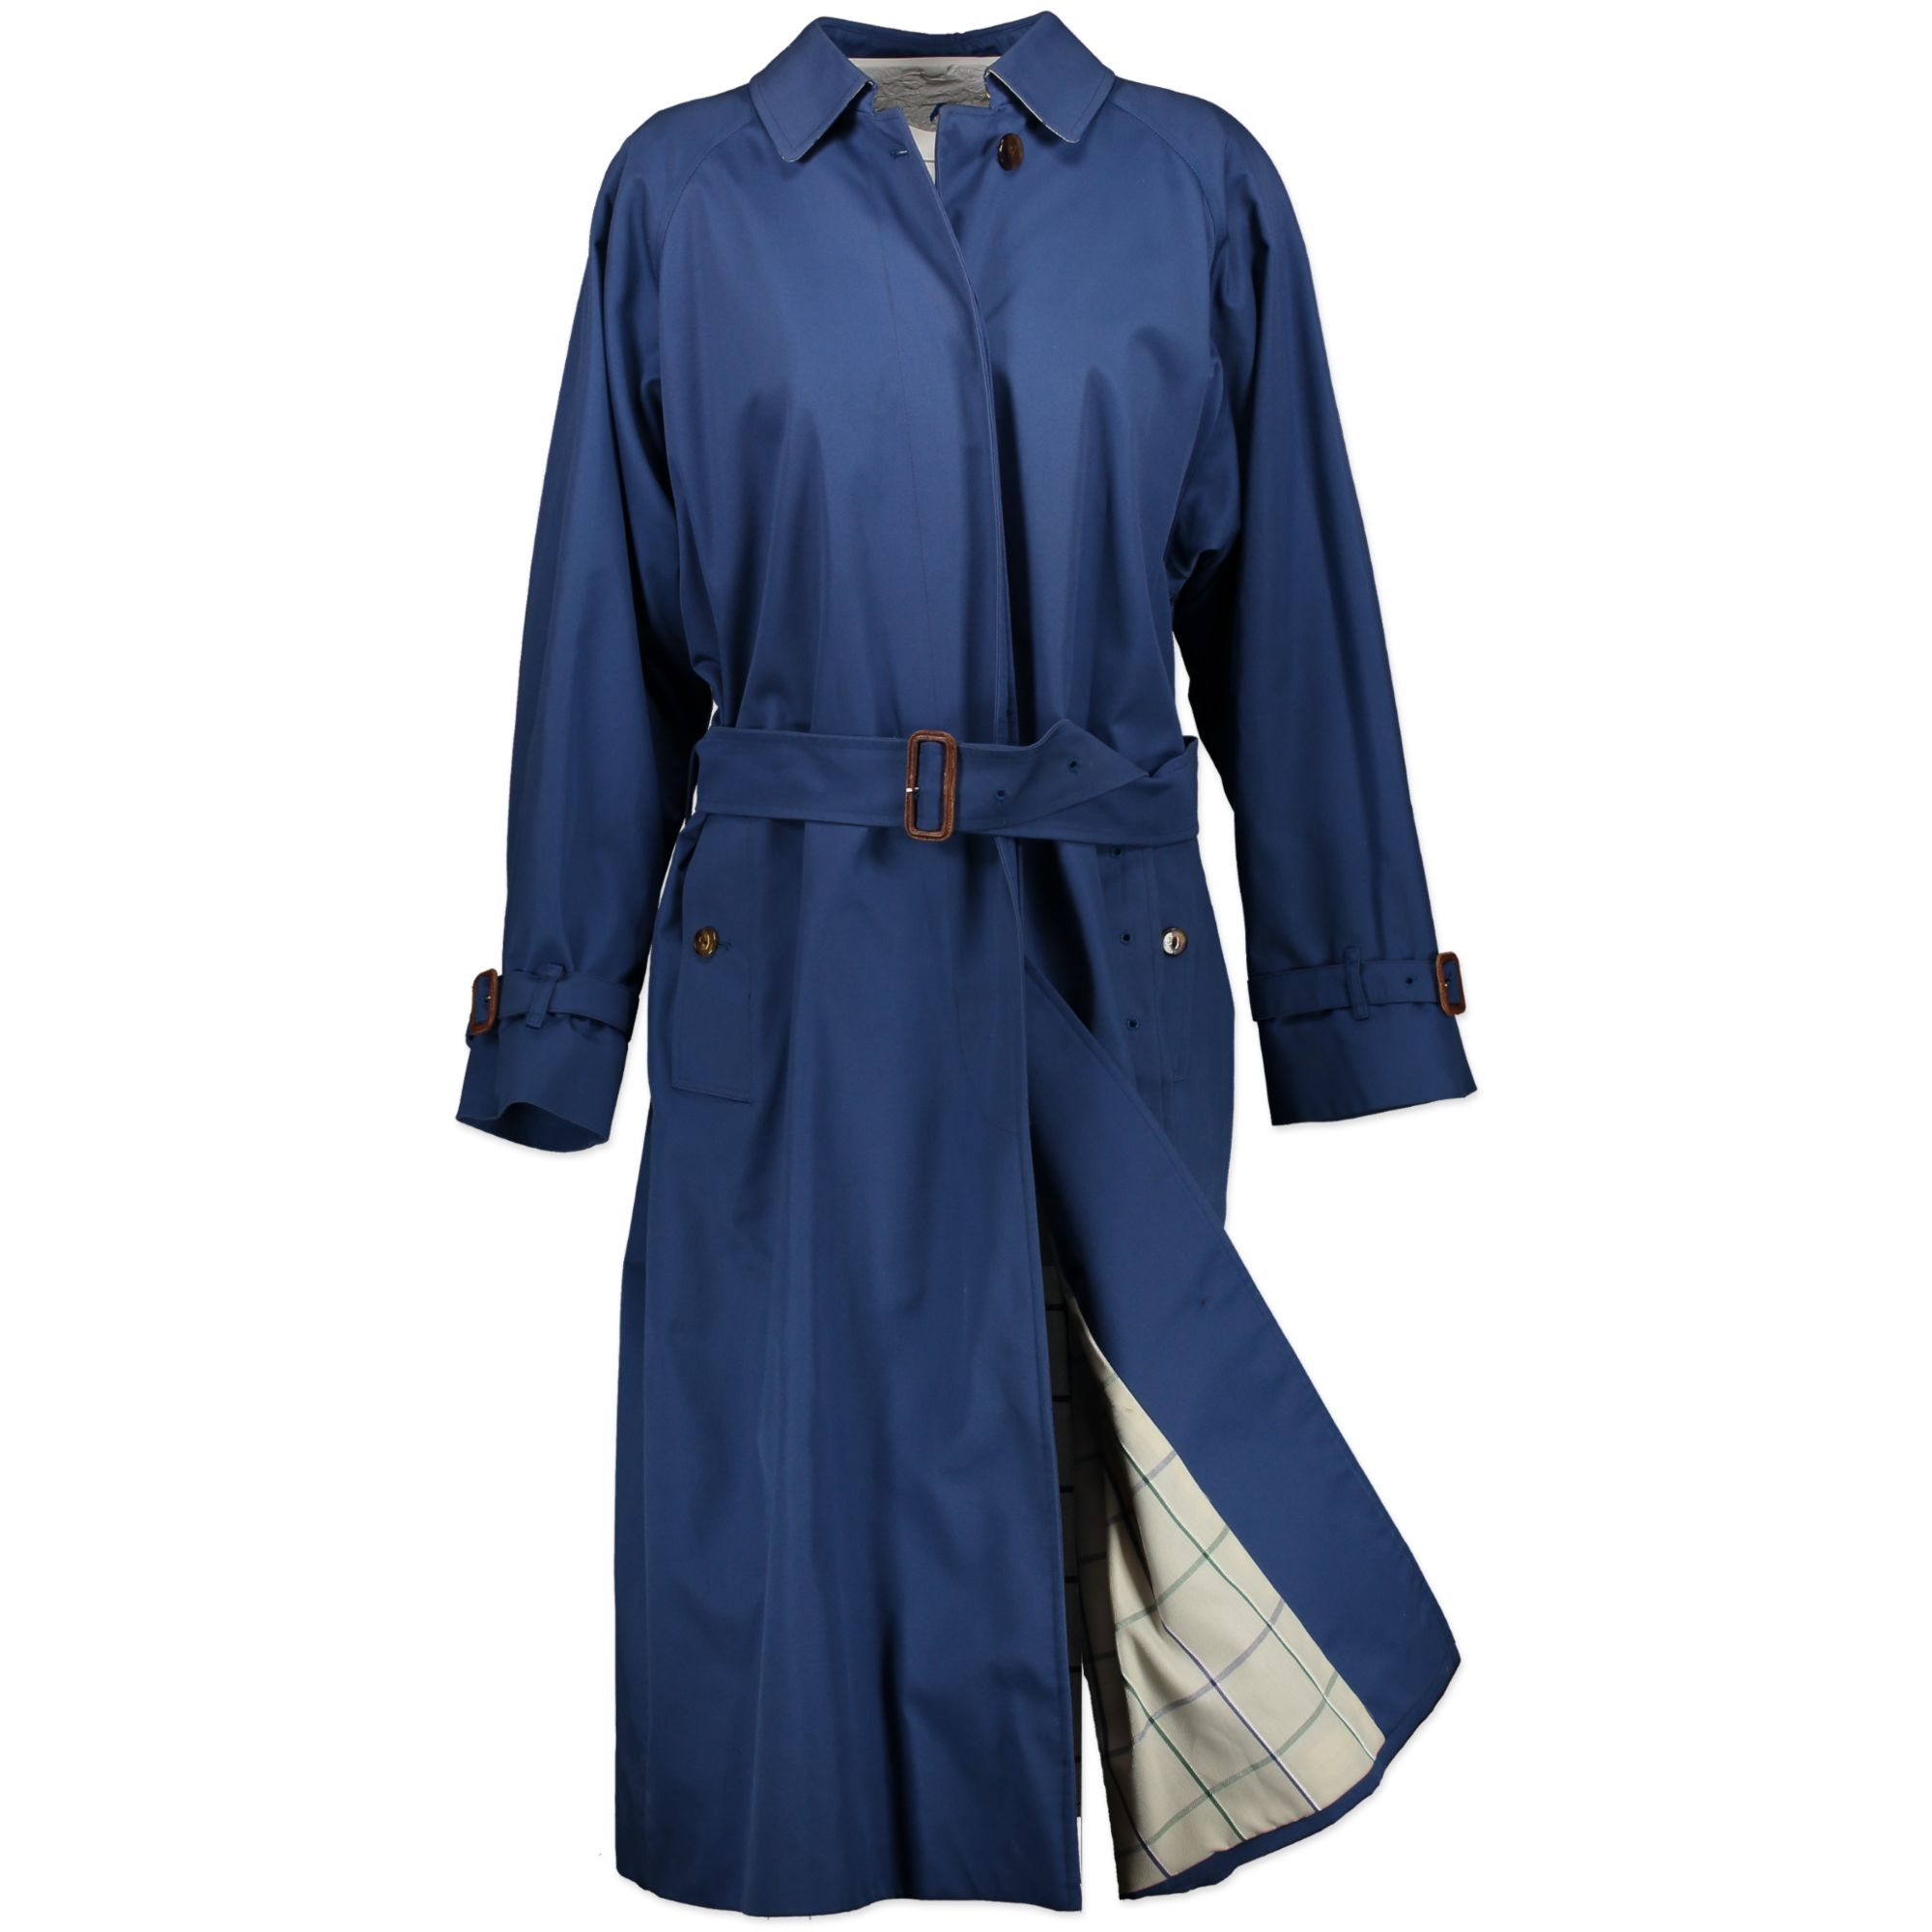 Burberry Blue Long Trench Coat - Size M at Labellov. Safe online shopping at the best price designer vintage